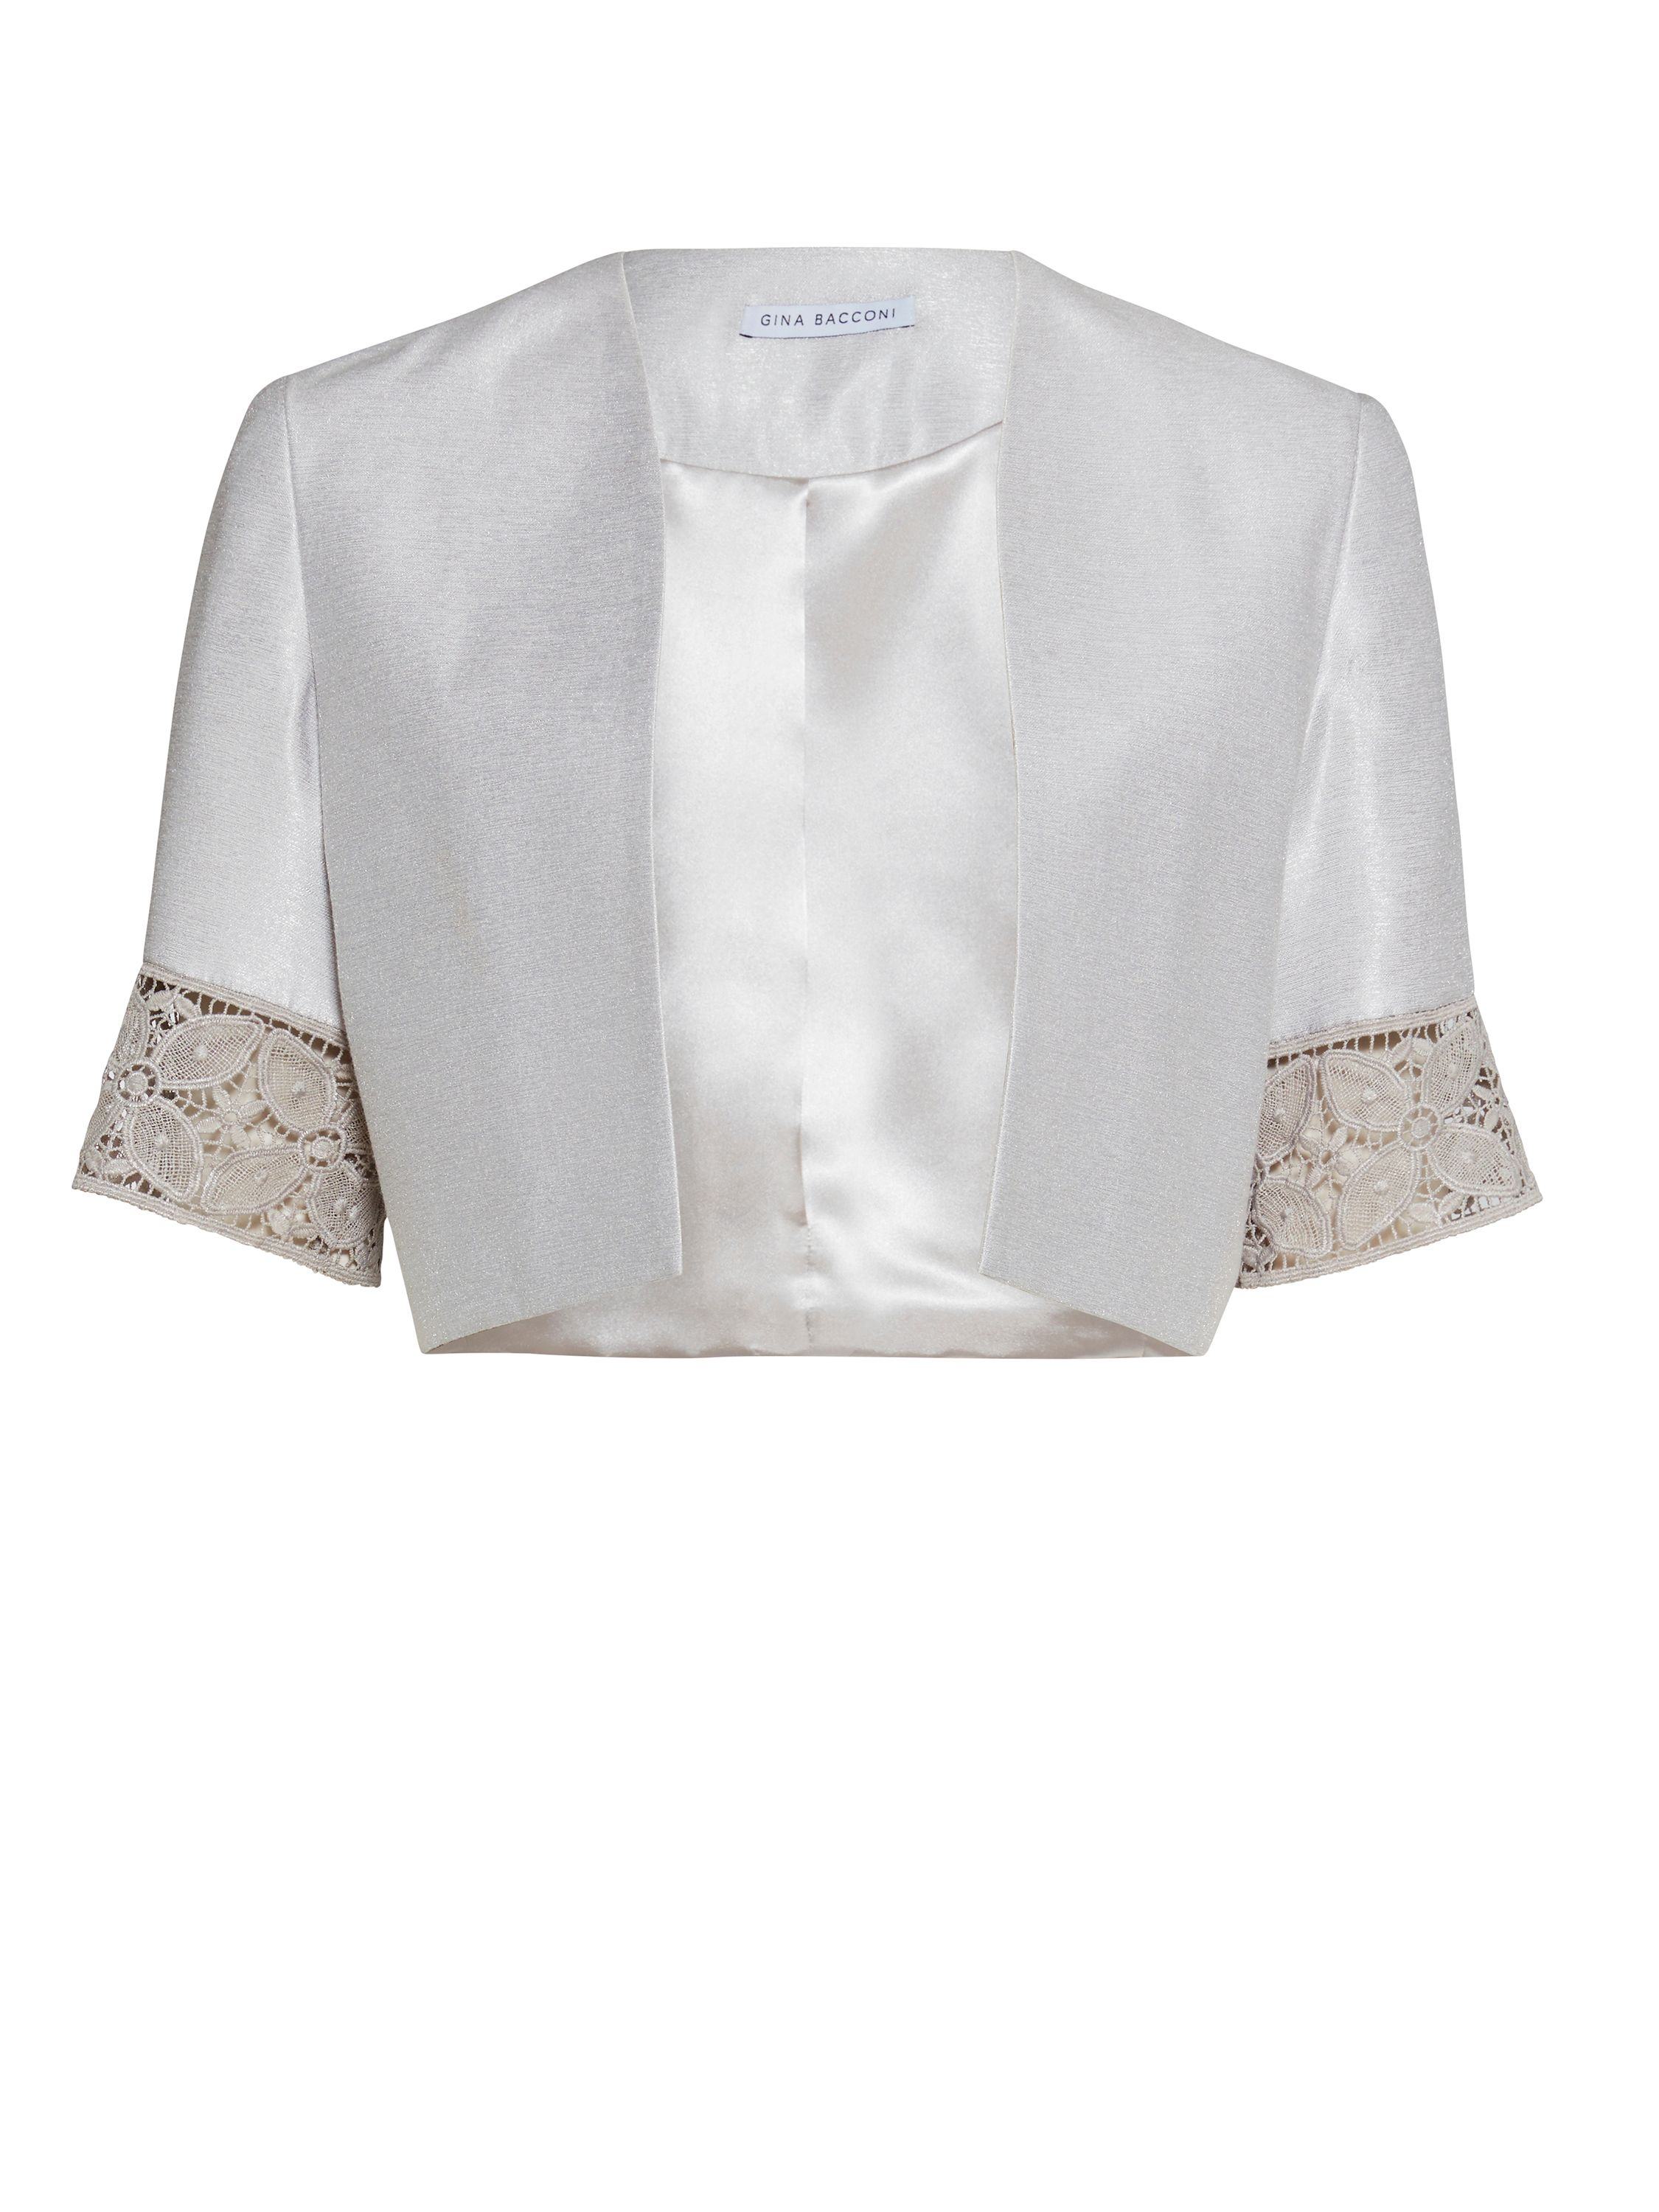 Gina Bacconi Crepe Chine And Antique Foil Jacket, White